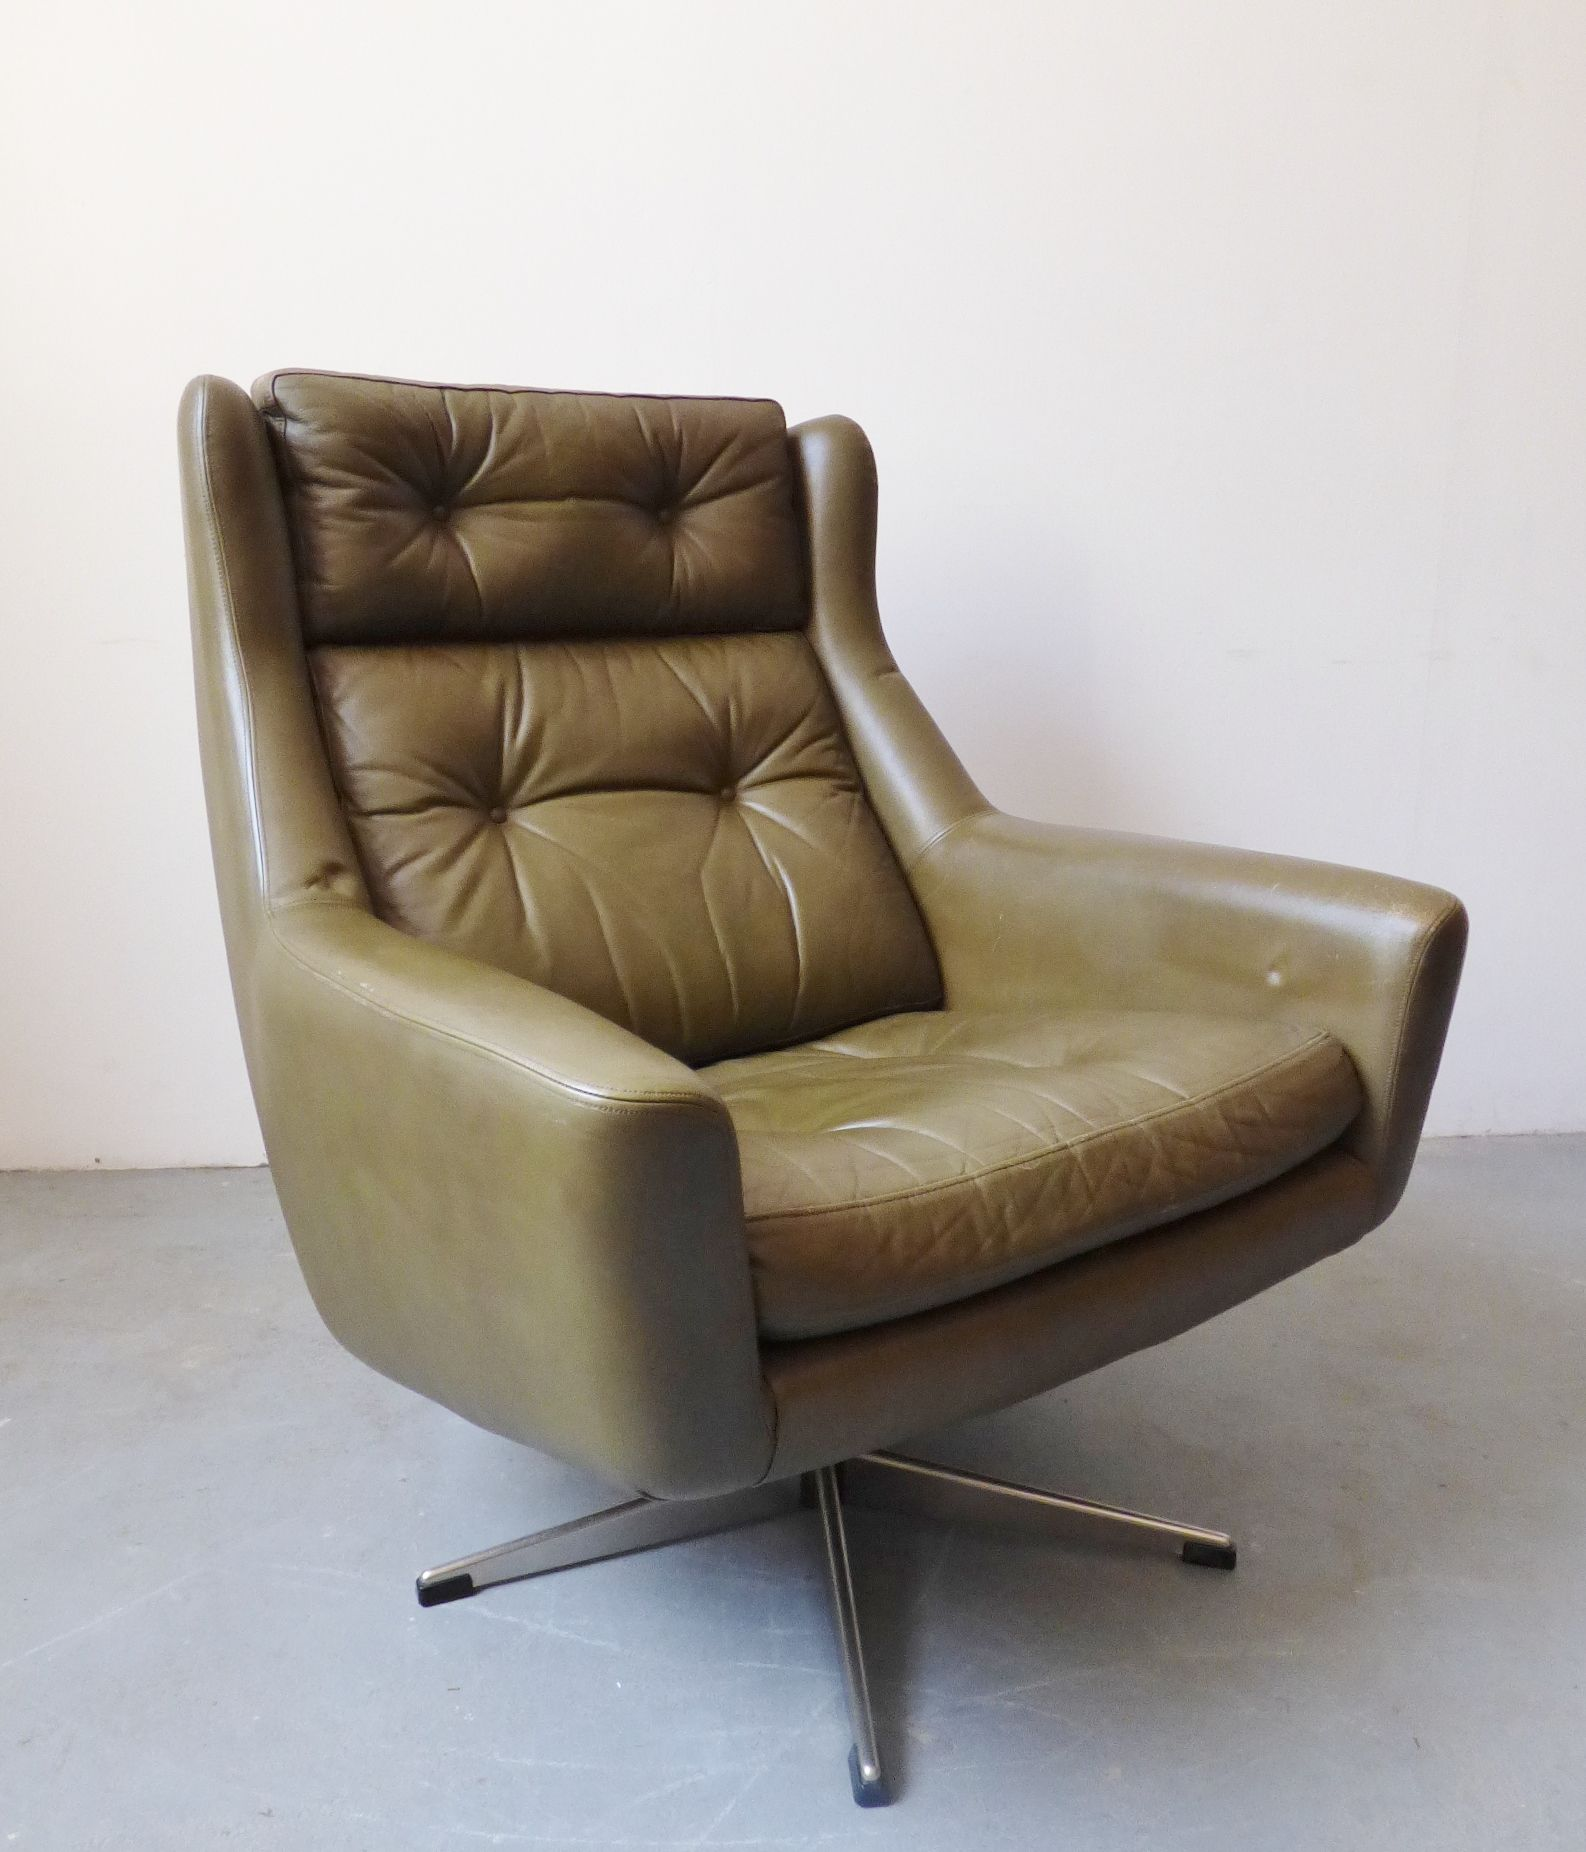 1960s Danish green leather Eran swivel chair Leather